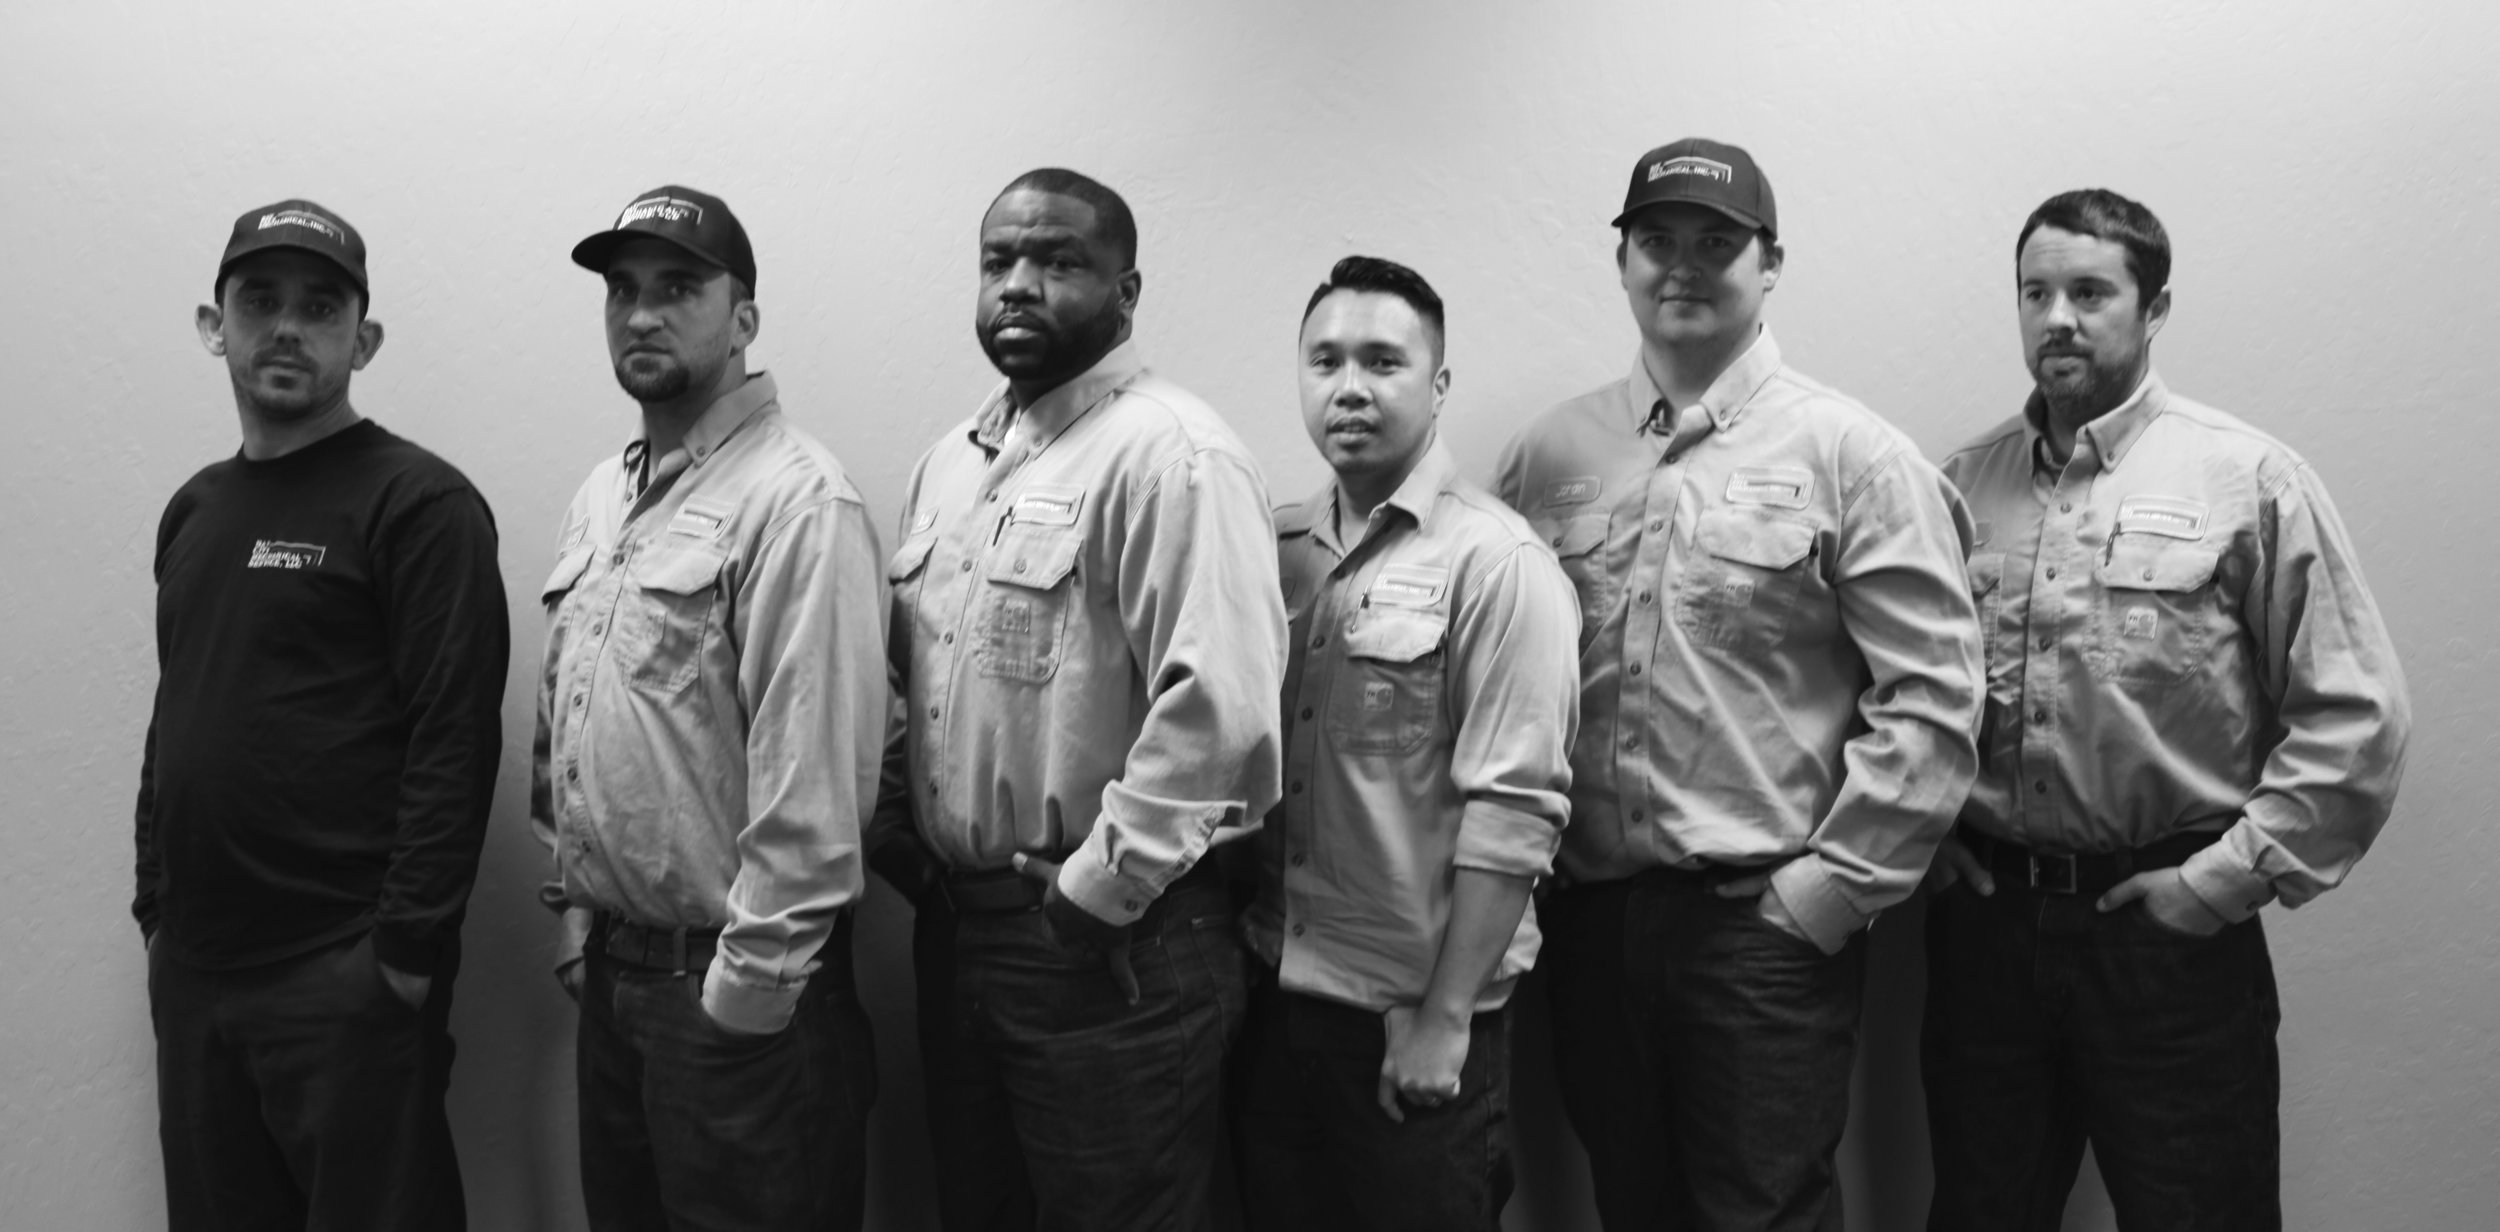 Field Technicians  (L to R) John Leal, Michael D'Angelo, Bruce Ford, Fred Cacatian, Jordin Collins, Sean Corbett